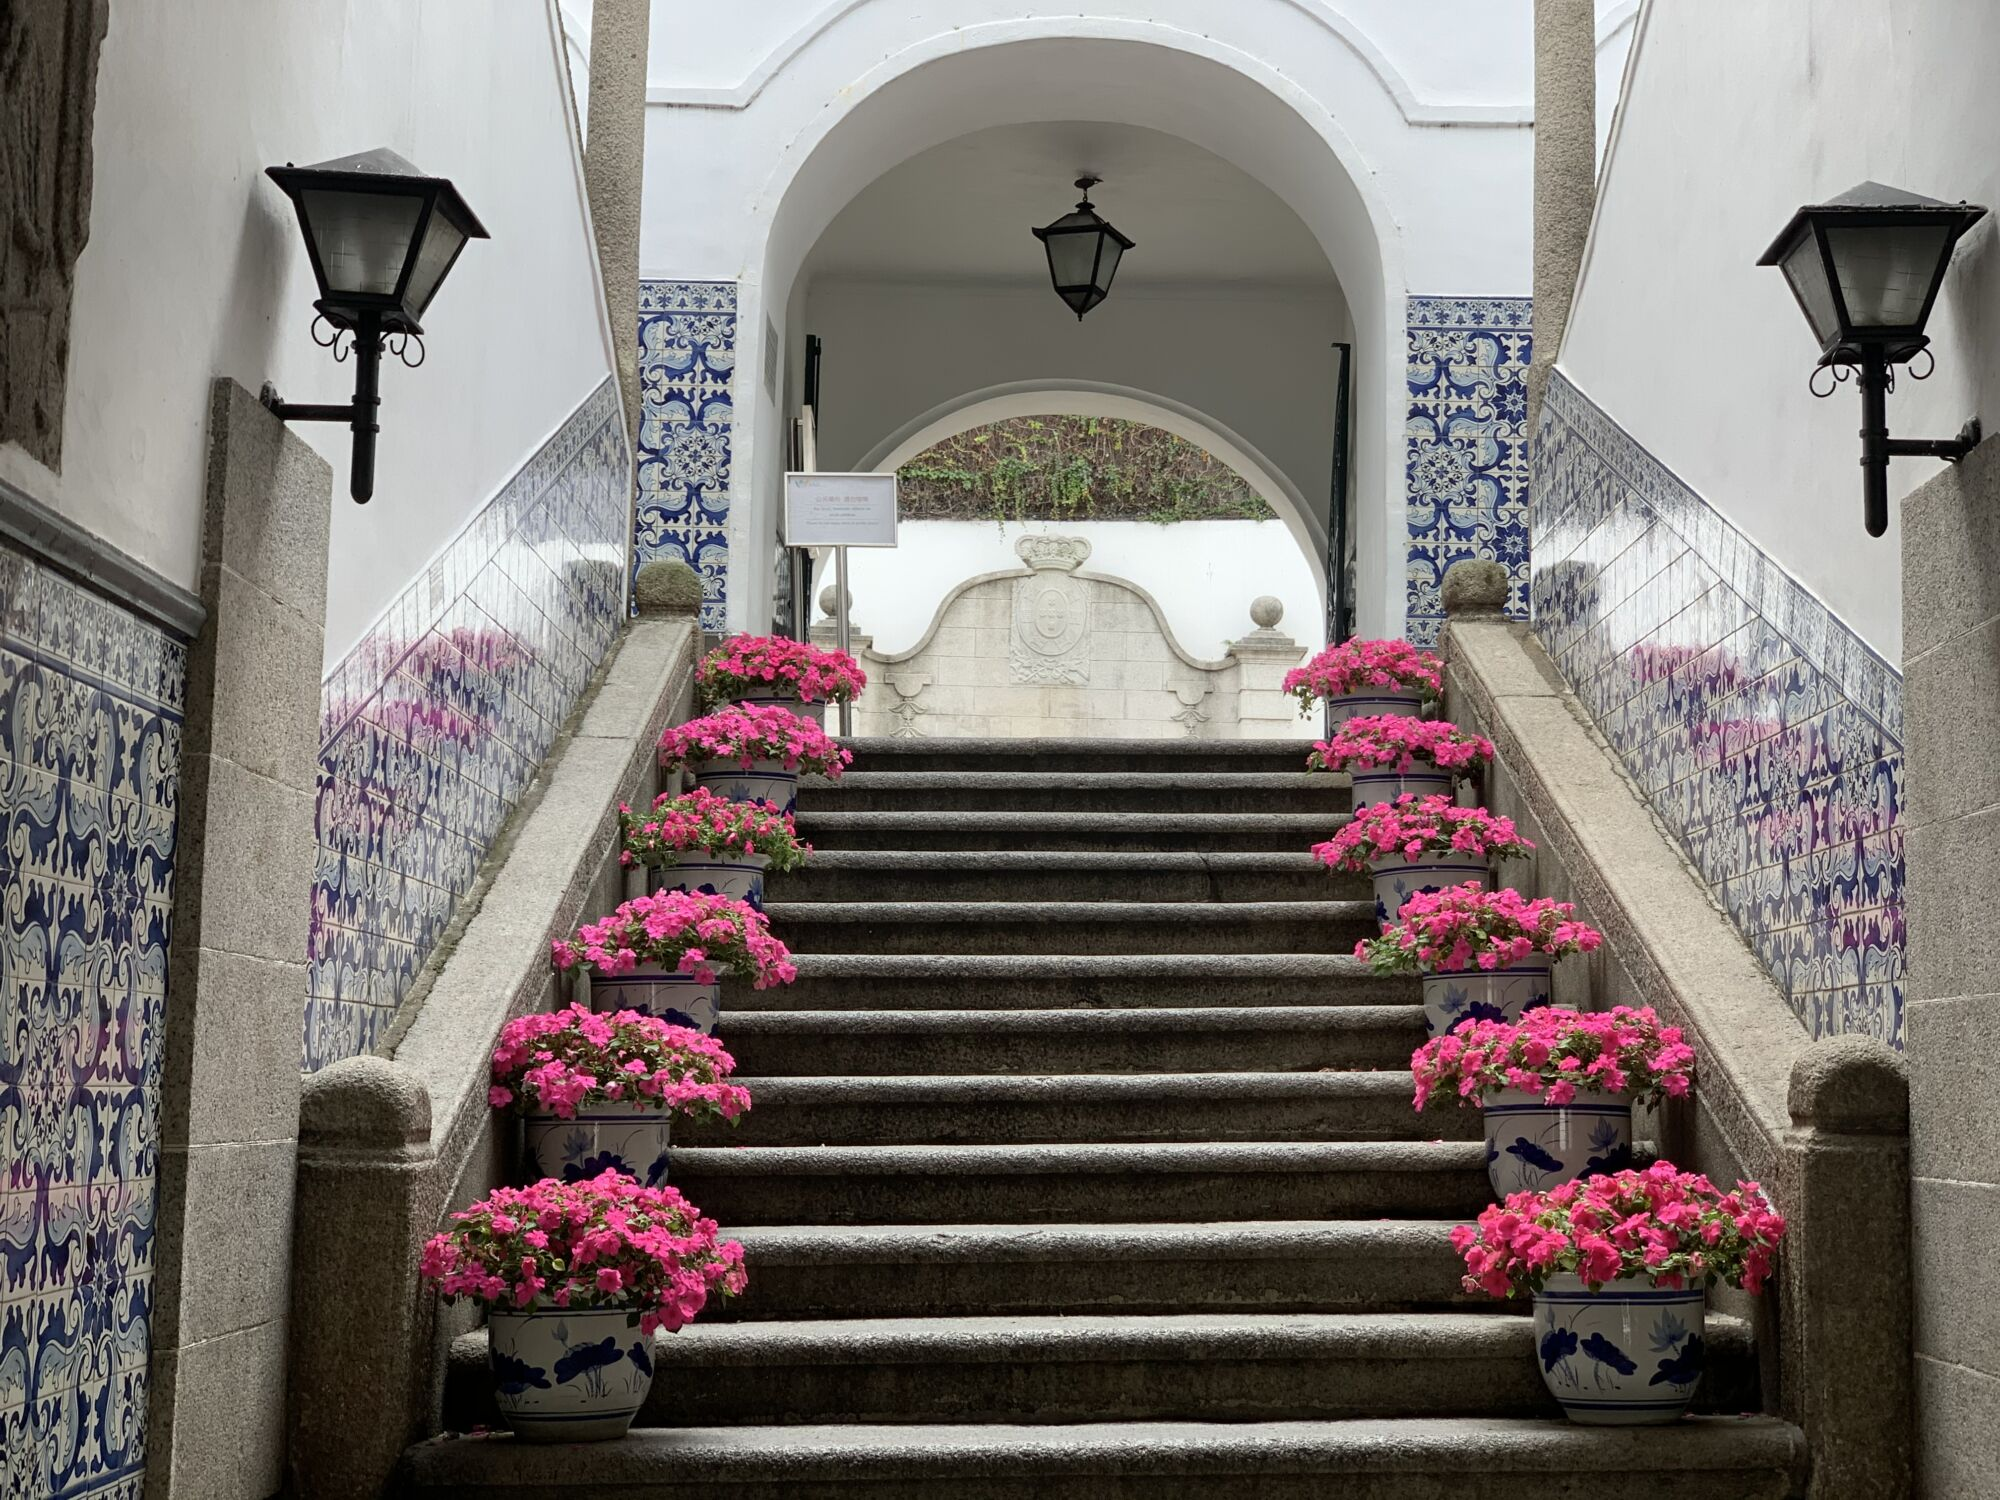 Leal Senado Building Entrance with Pink Flowers View from Below Macau Lifestyle